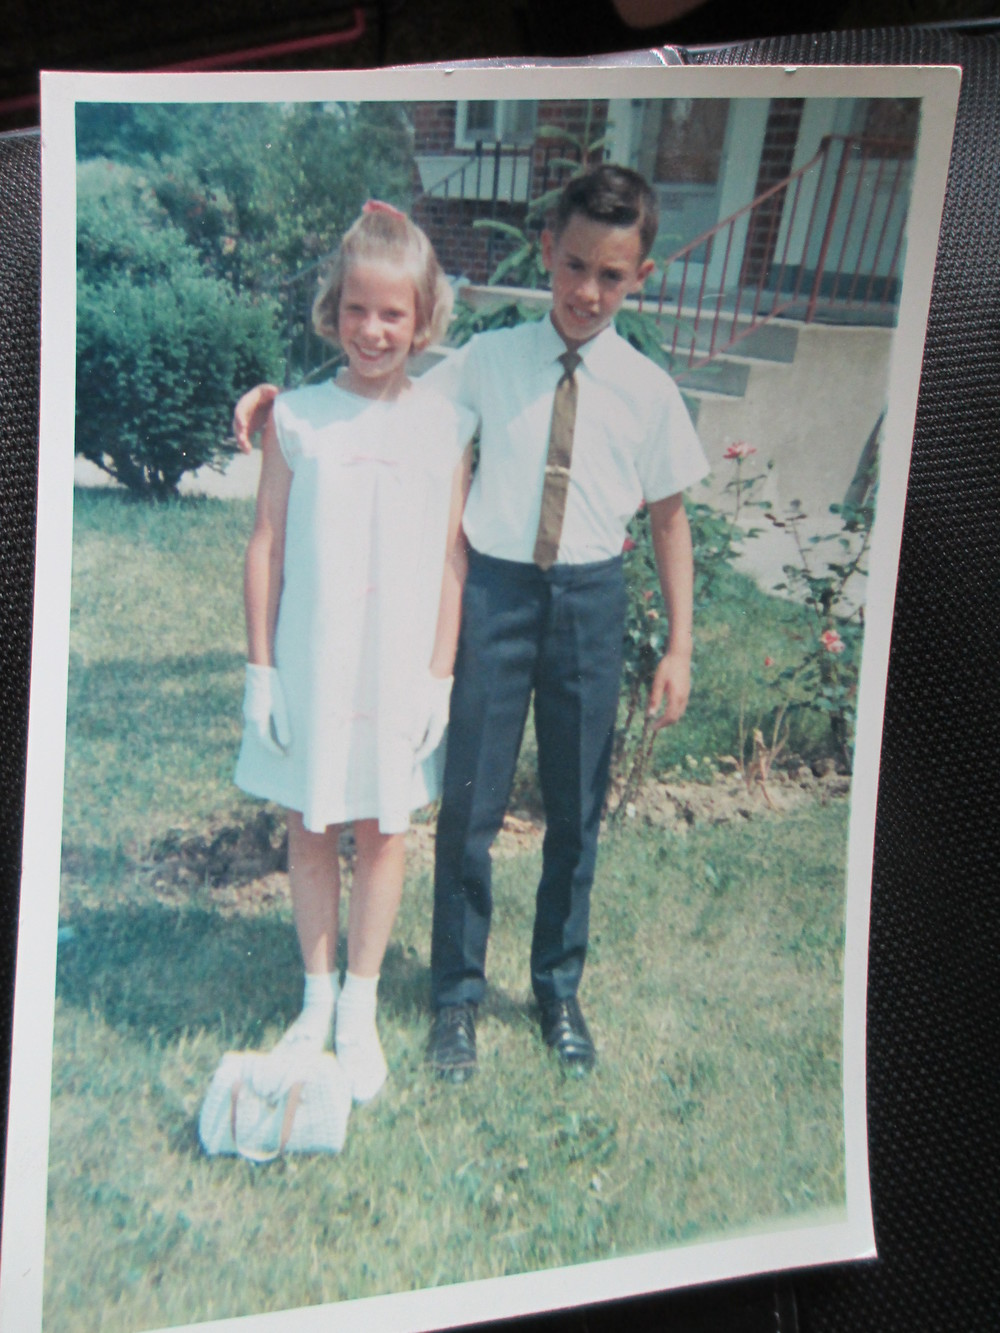 In our Easter outfits, check out those gloves and my groovy handbag!